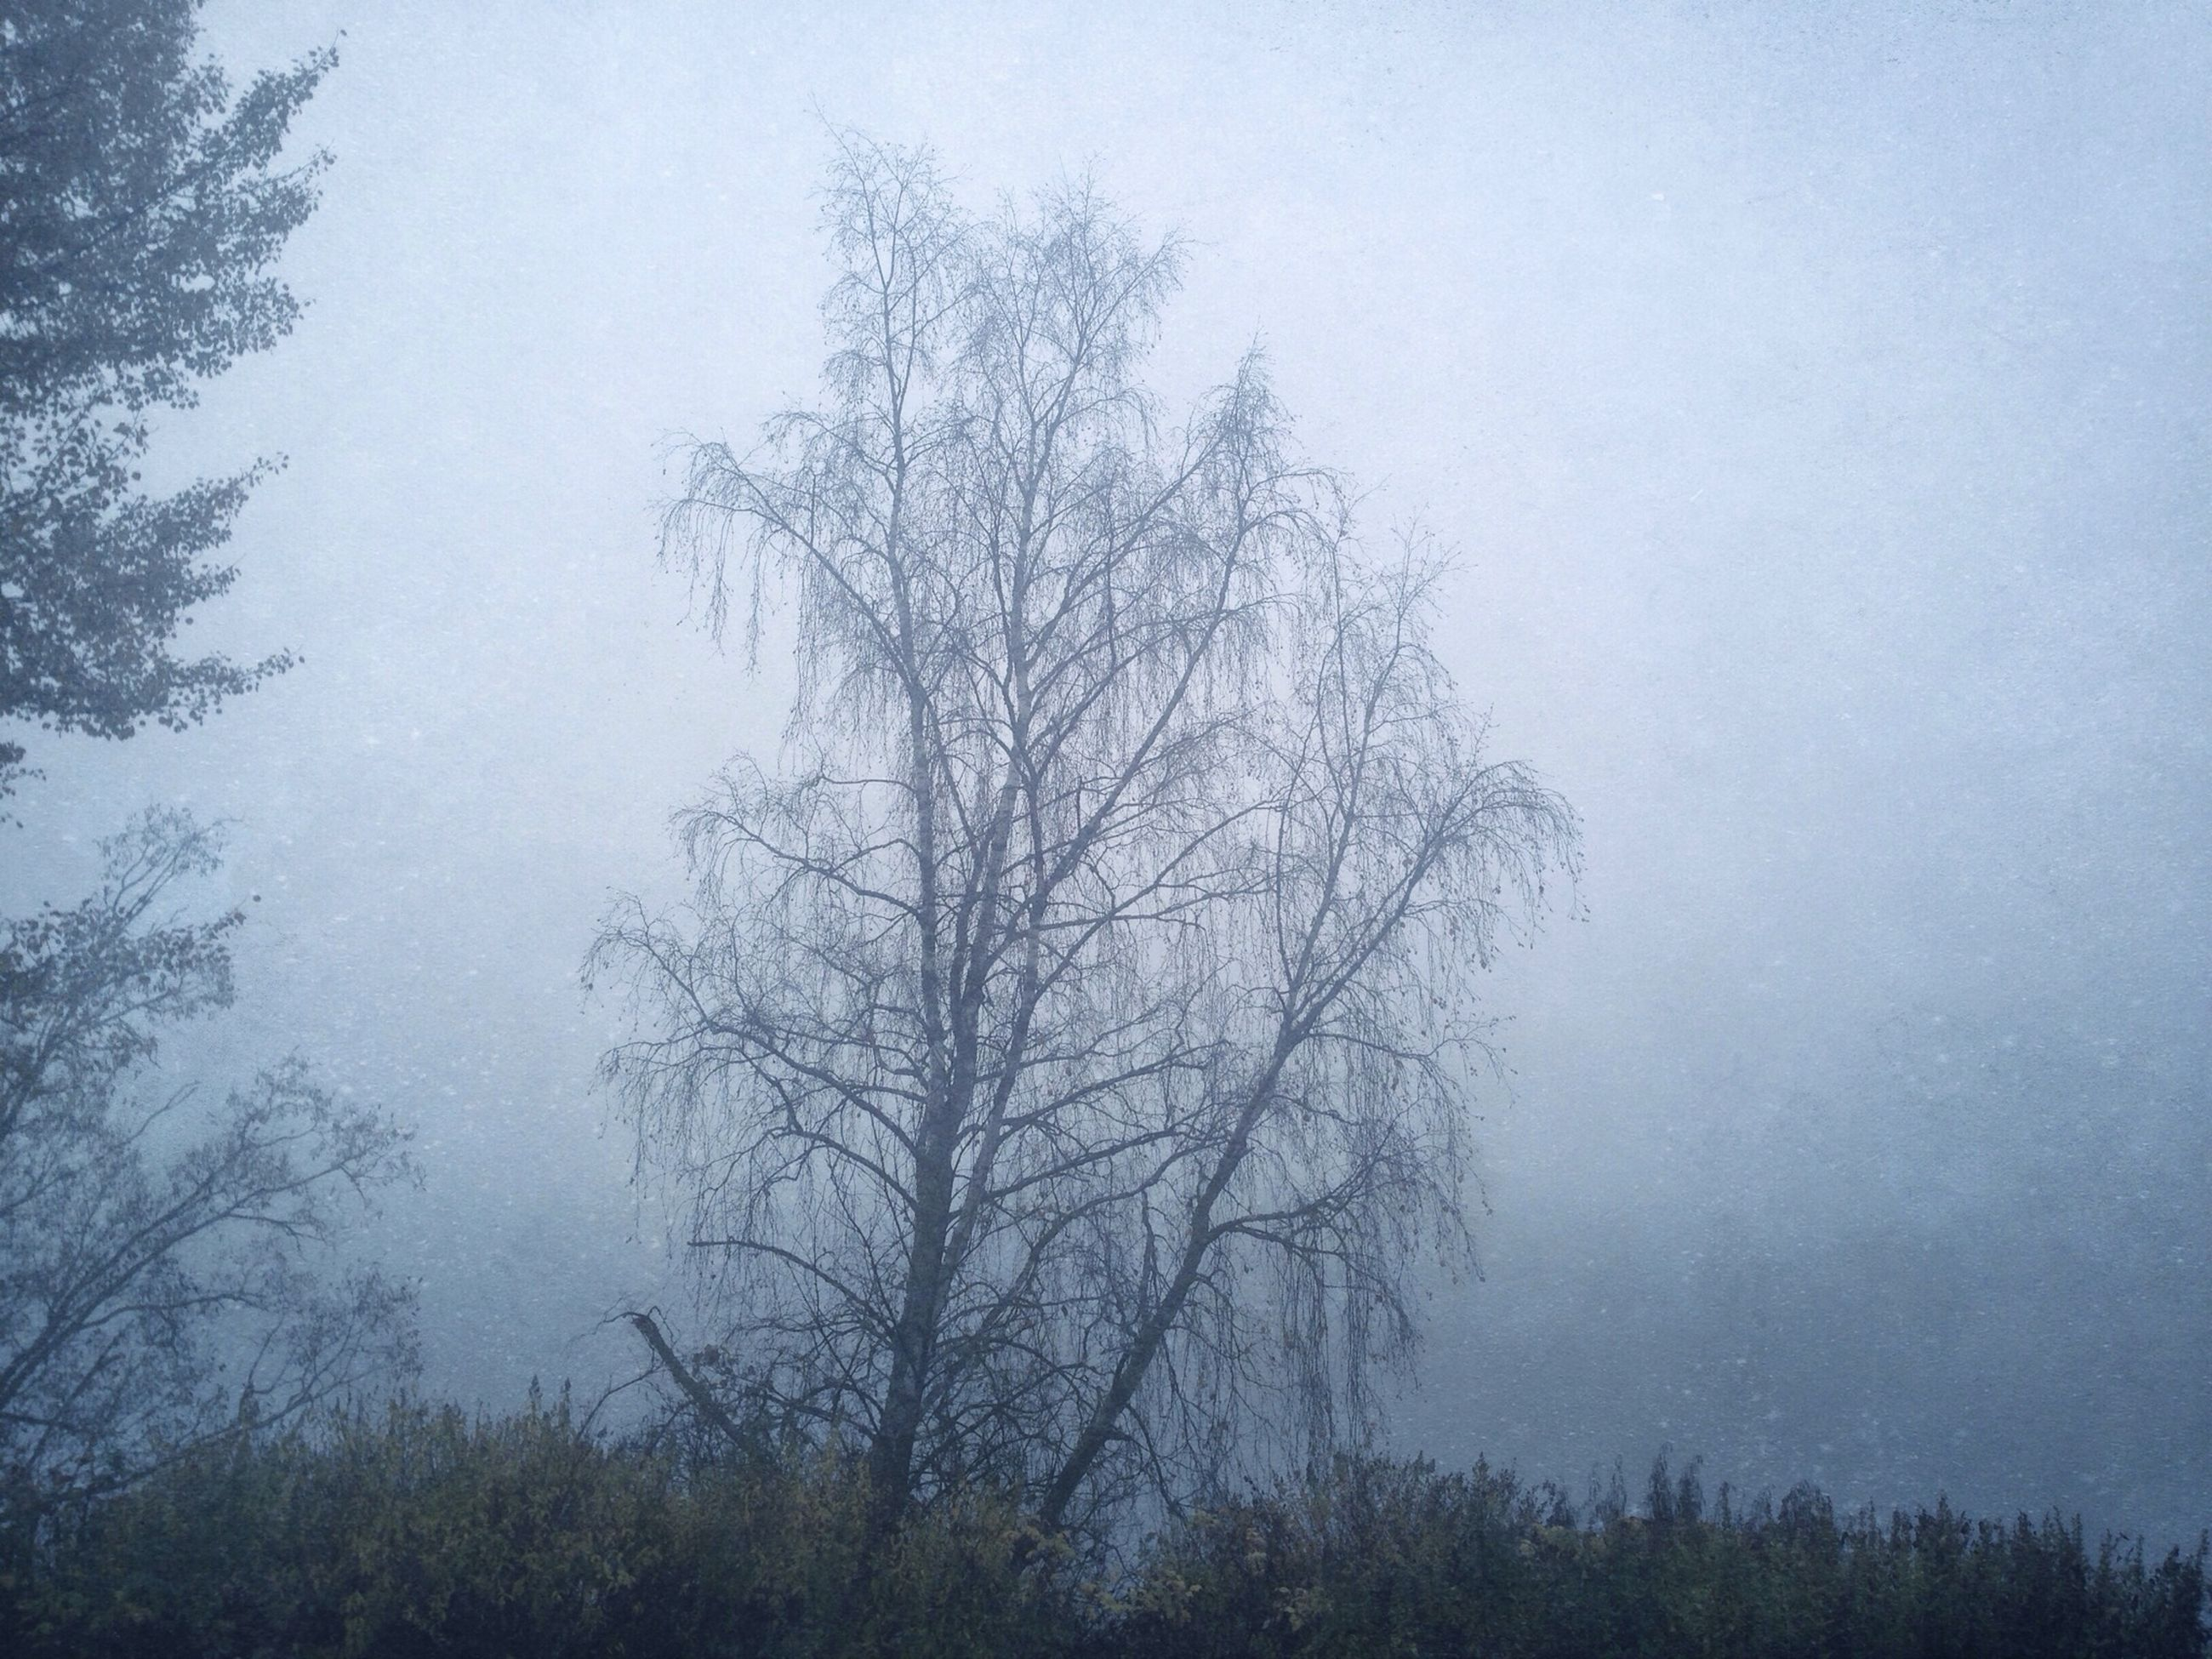 tree, tranquility, fog, tranquil scene, bare tree, beauty in nature, nature, low angle view, branch, scenics, foggy, growth, sky, forest, weather, non-urban scene, day, outdoors, idyllic